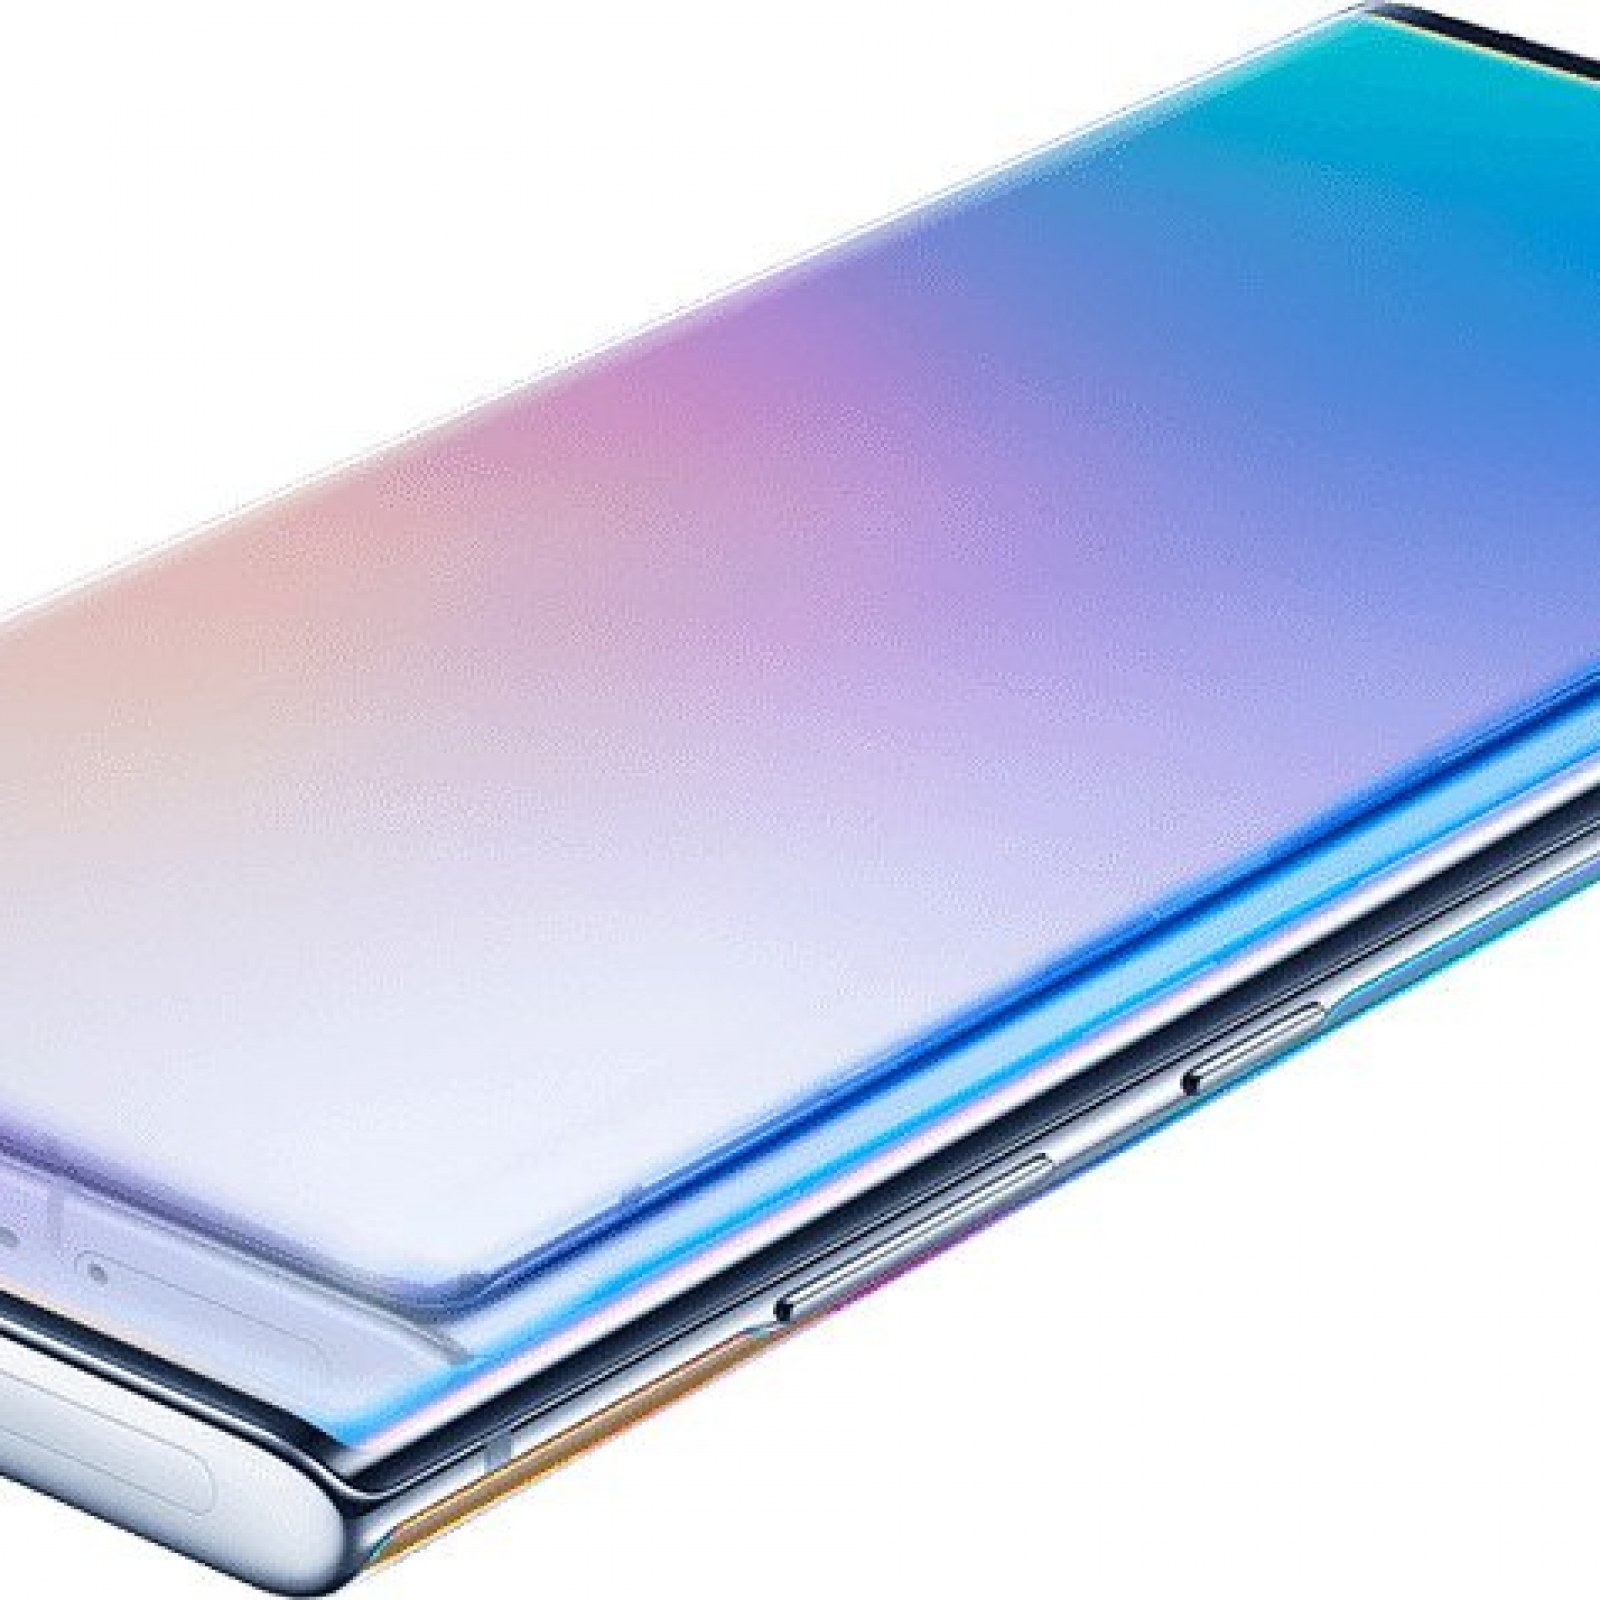 Samsung Galaxy Note 10 Plus Specs: Waterproof, SD Card